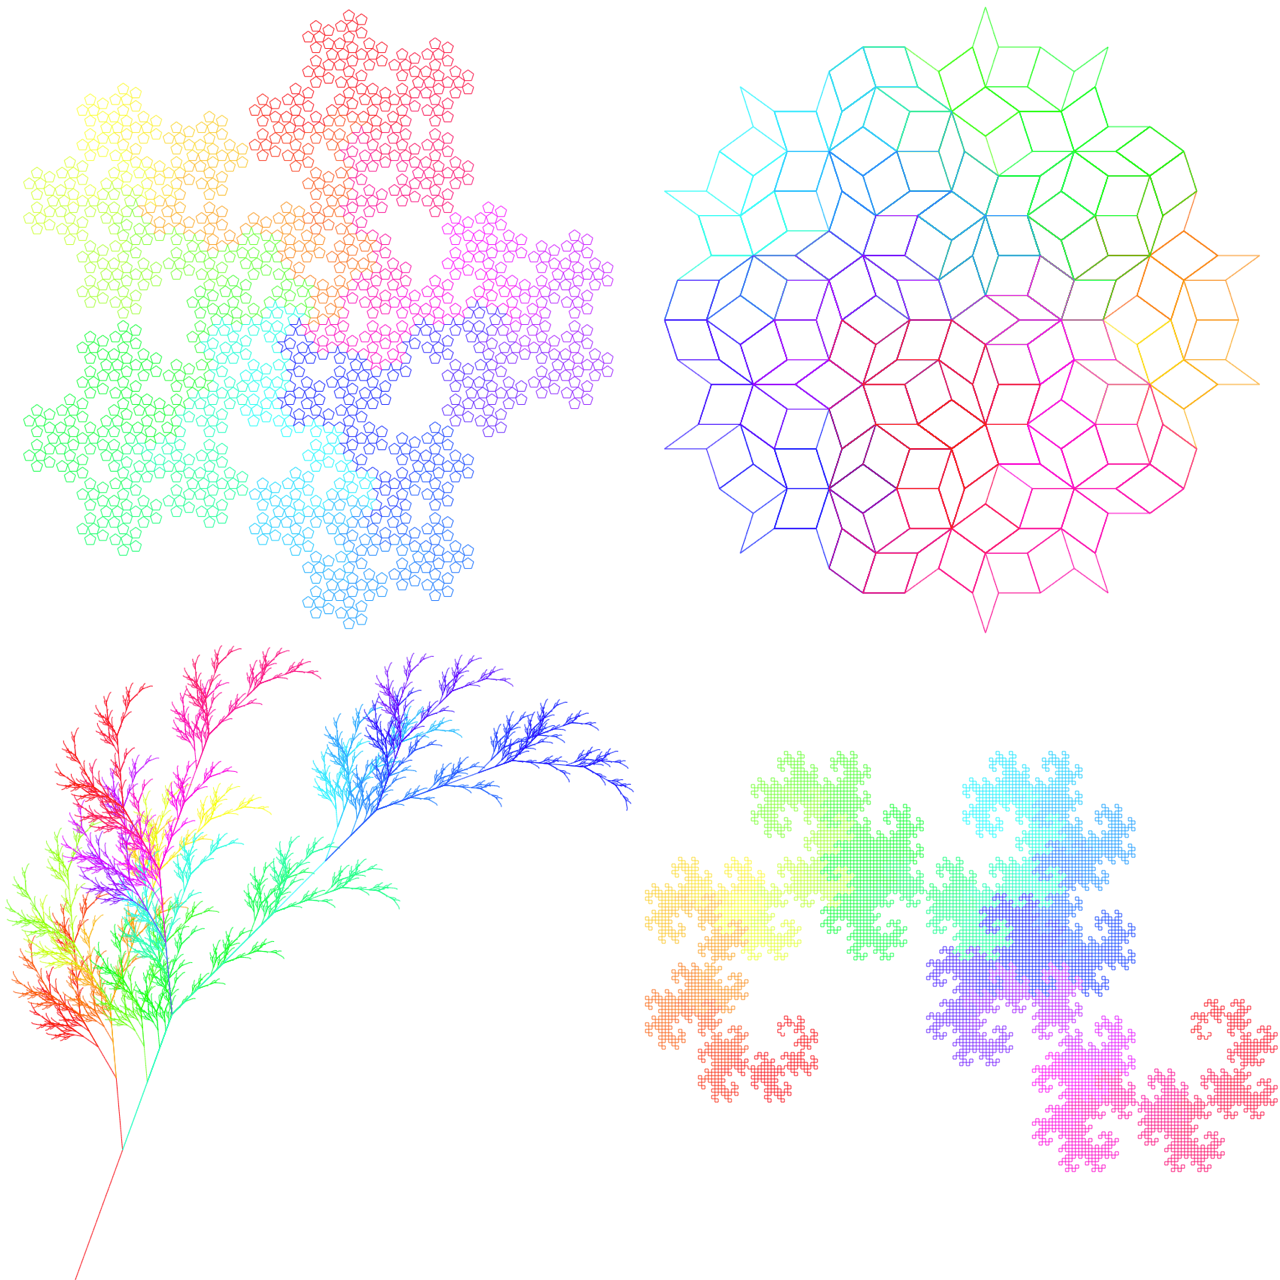 Workshop report: Generative design with Clojure - thi ng